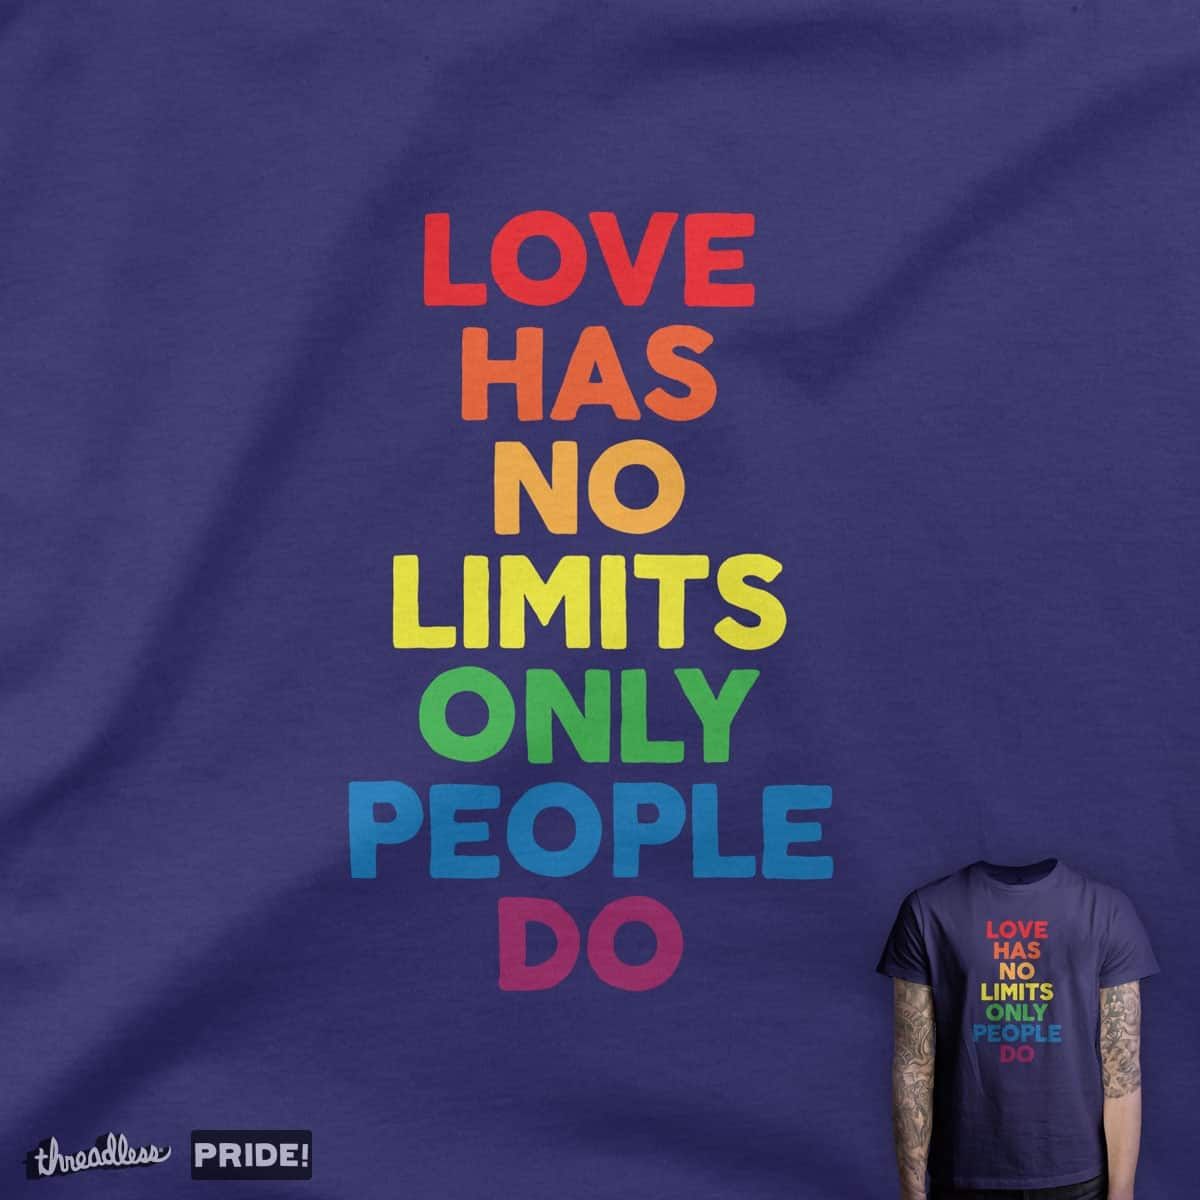 No Limits by quick-brown-fox on Threadless